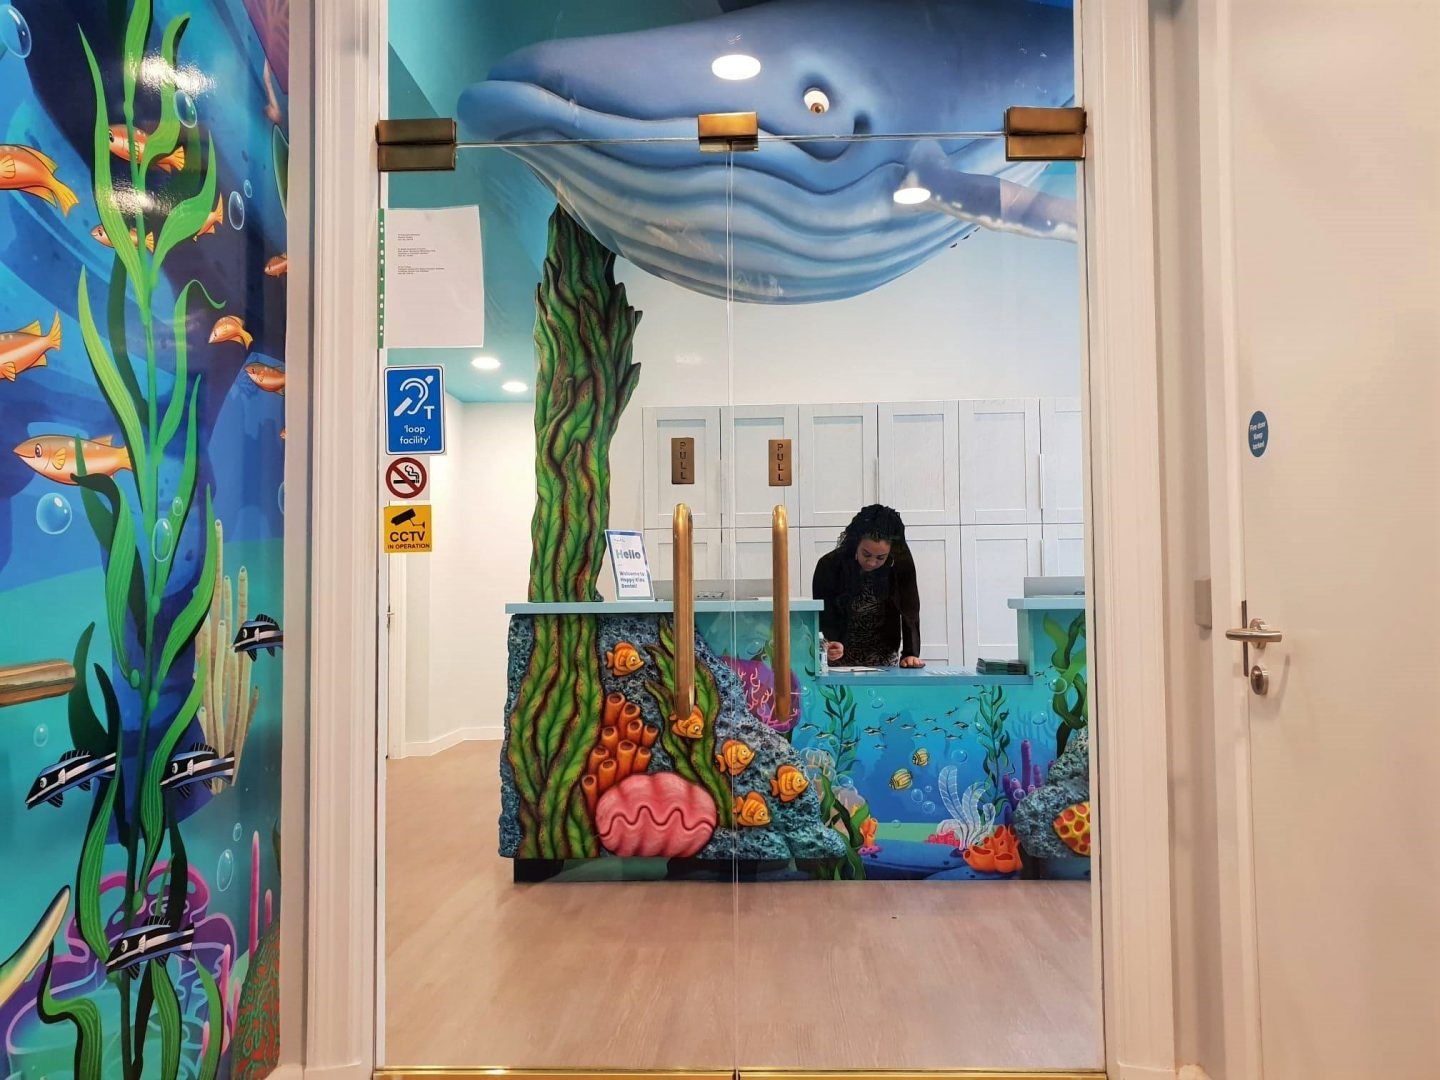 Reception desk and whale entrance at Happy Kids Dental, Chelsea